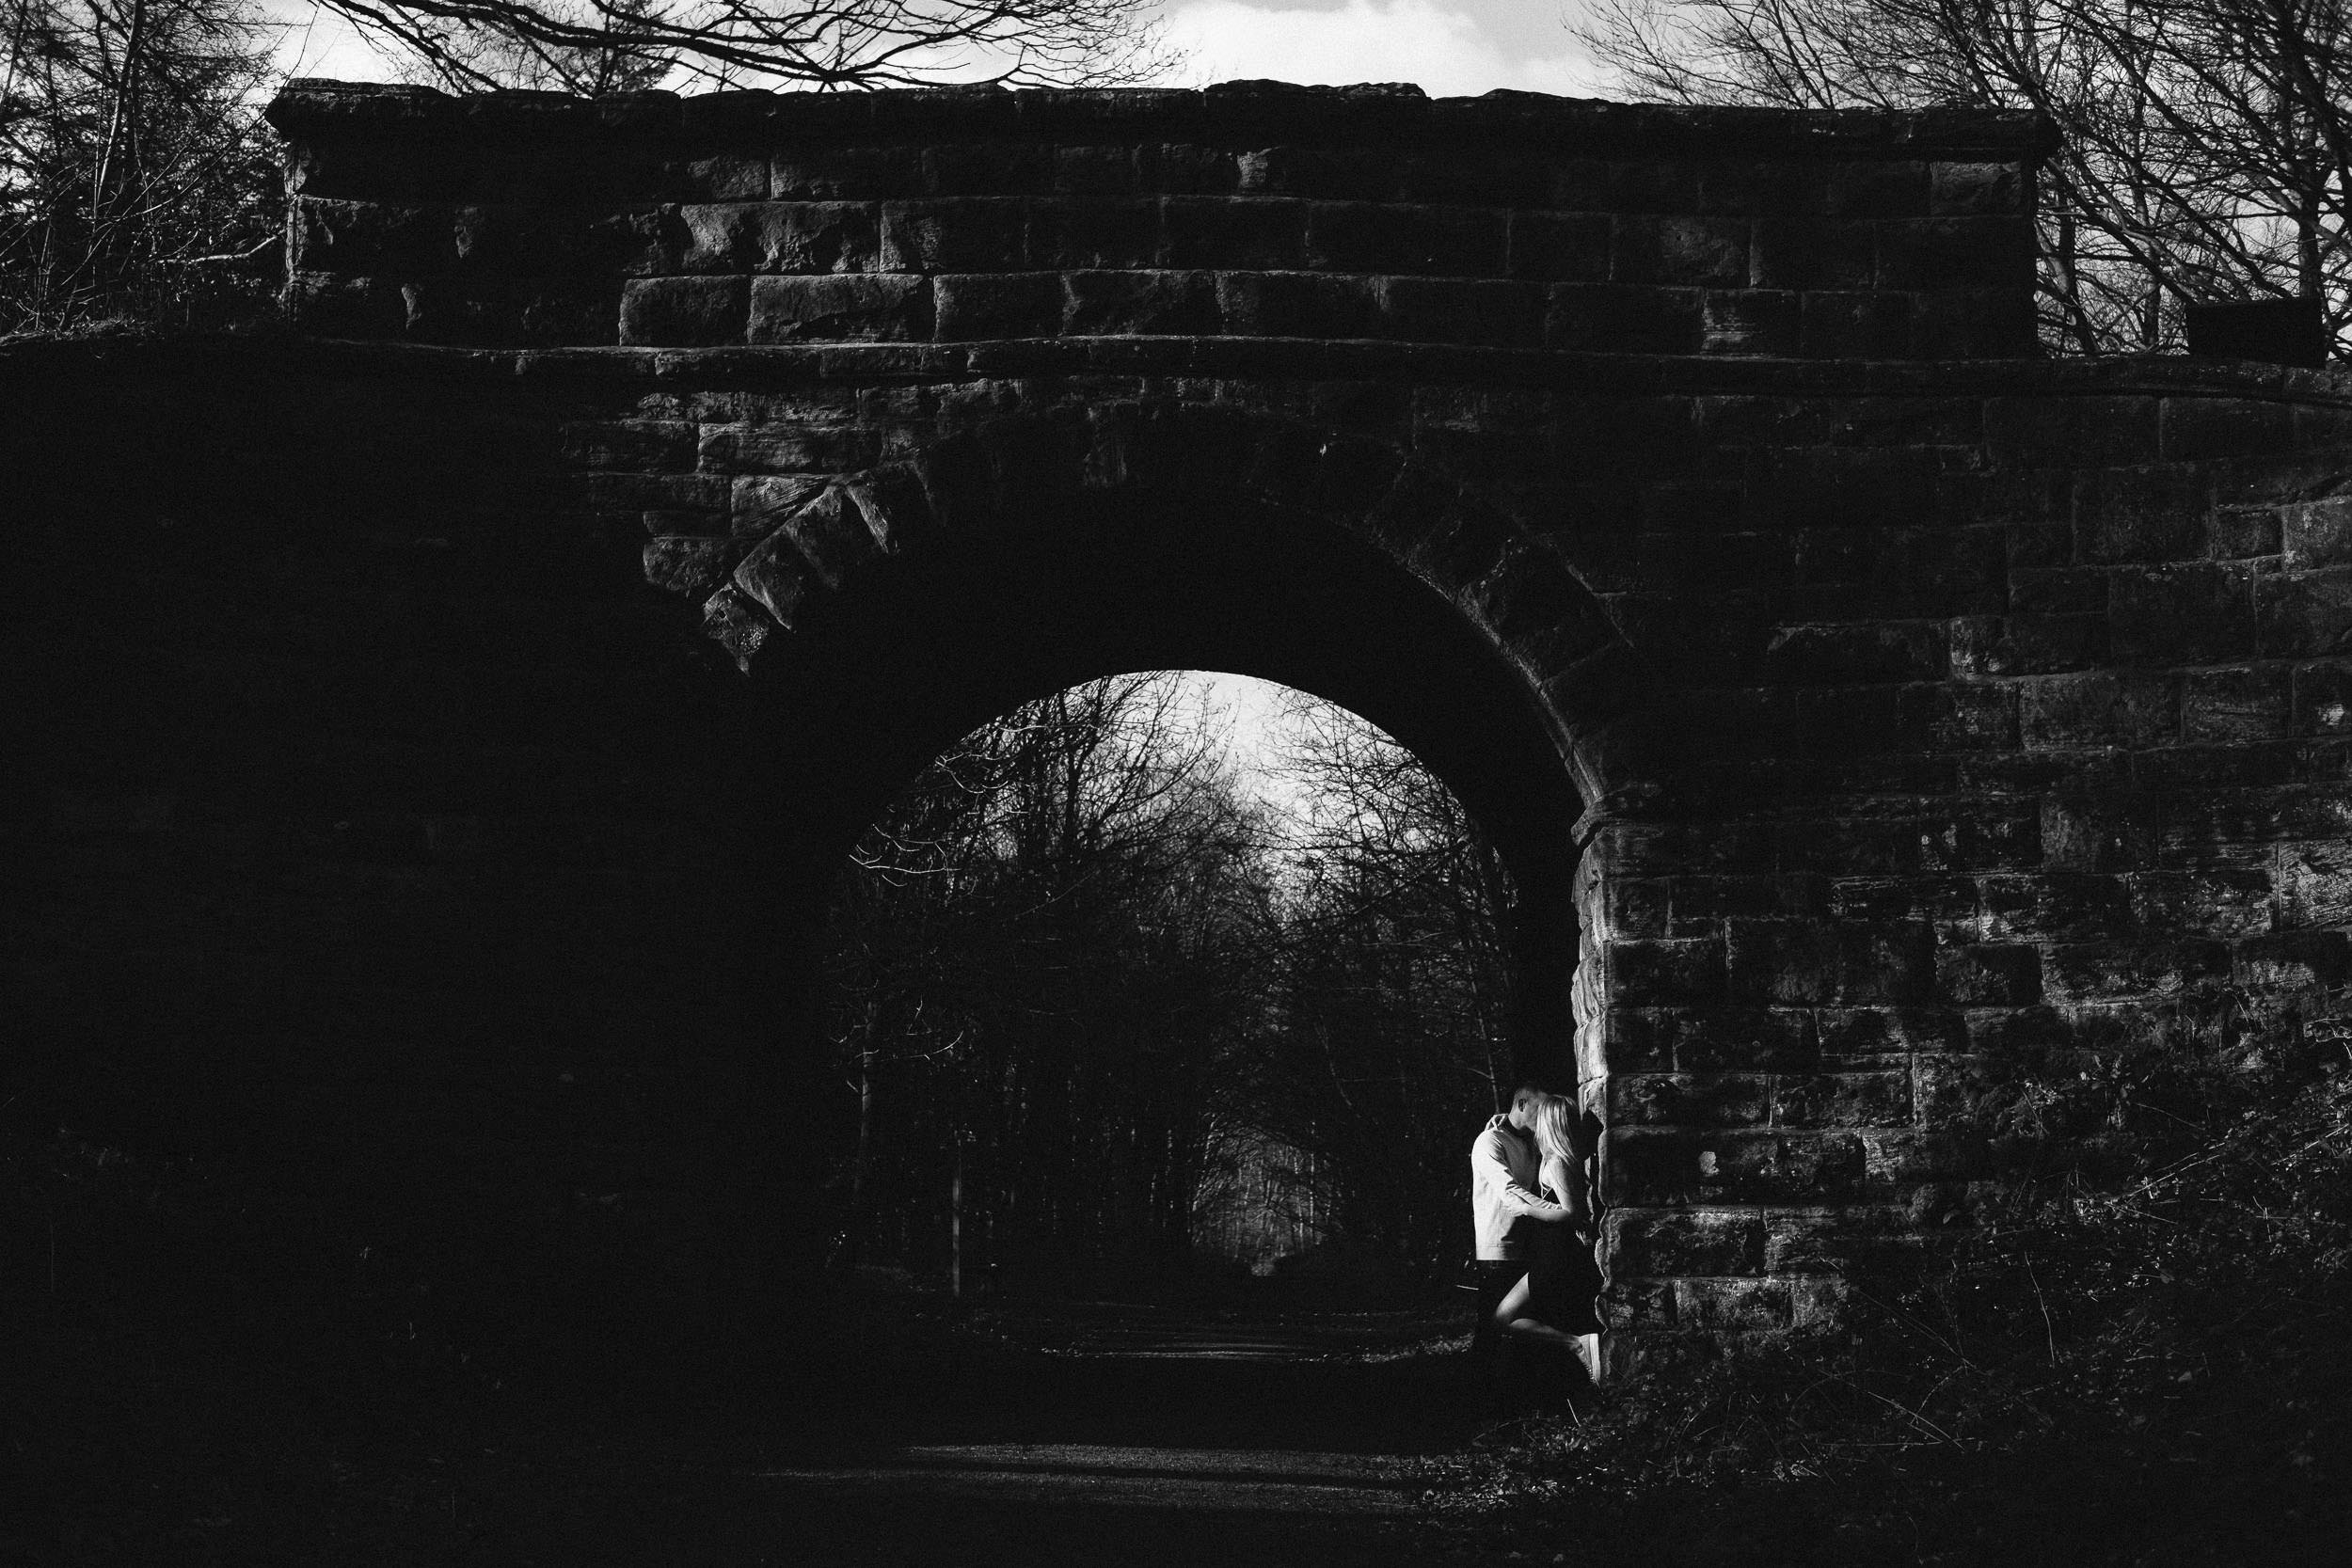 A black and white photo of an engaged couple kissing underneath a railway arch